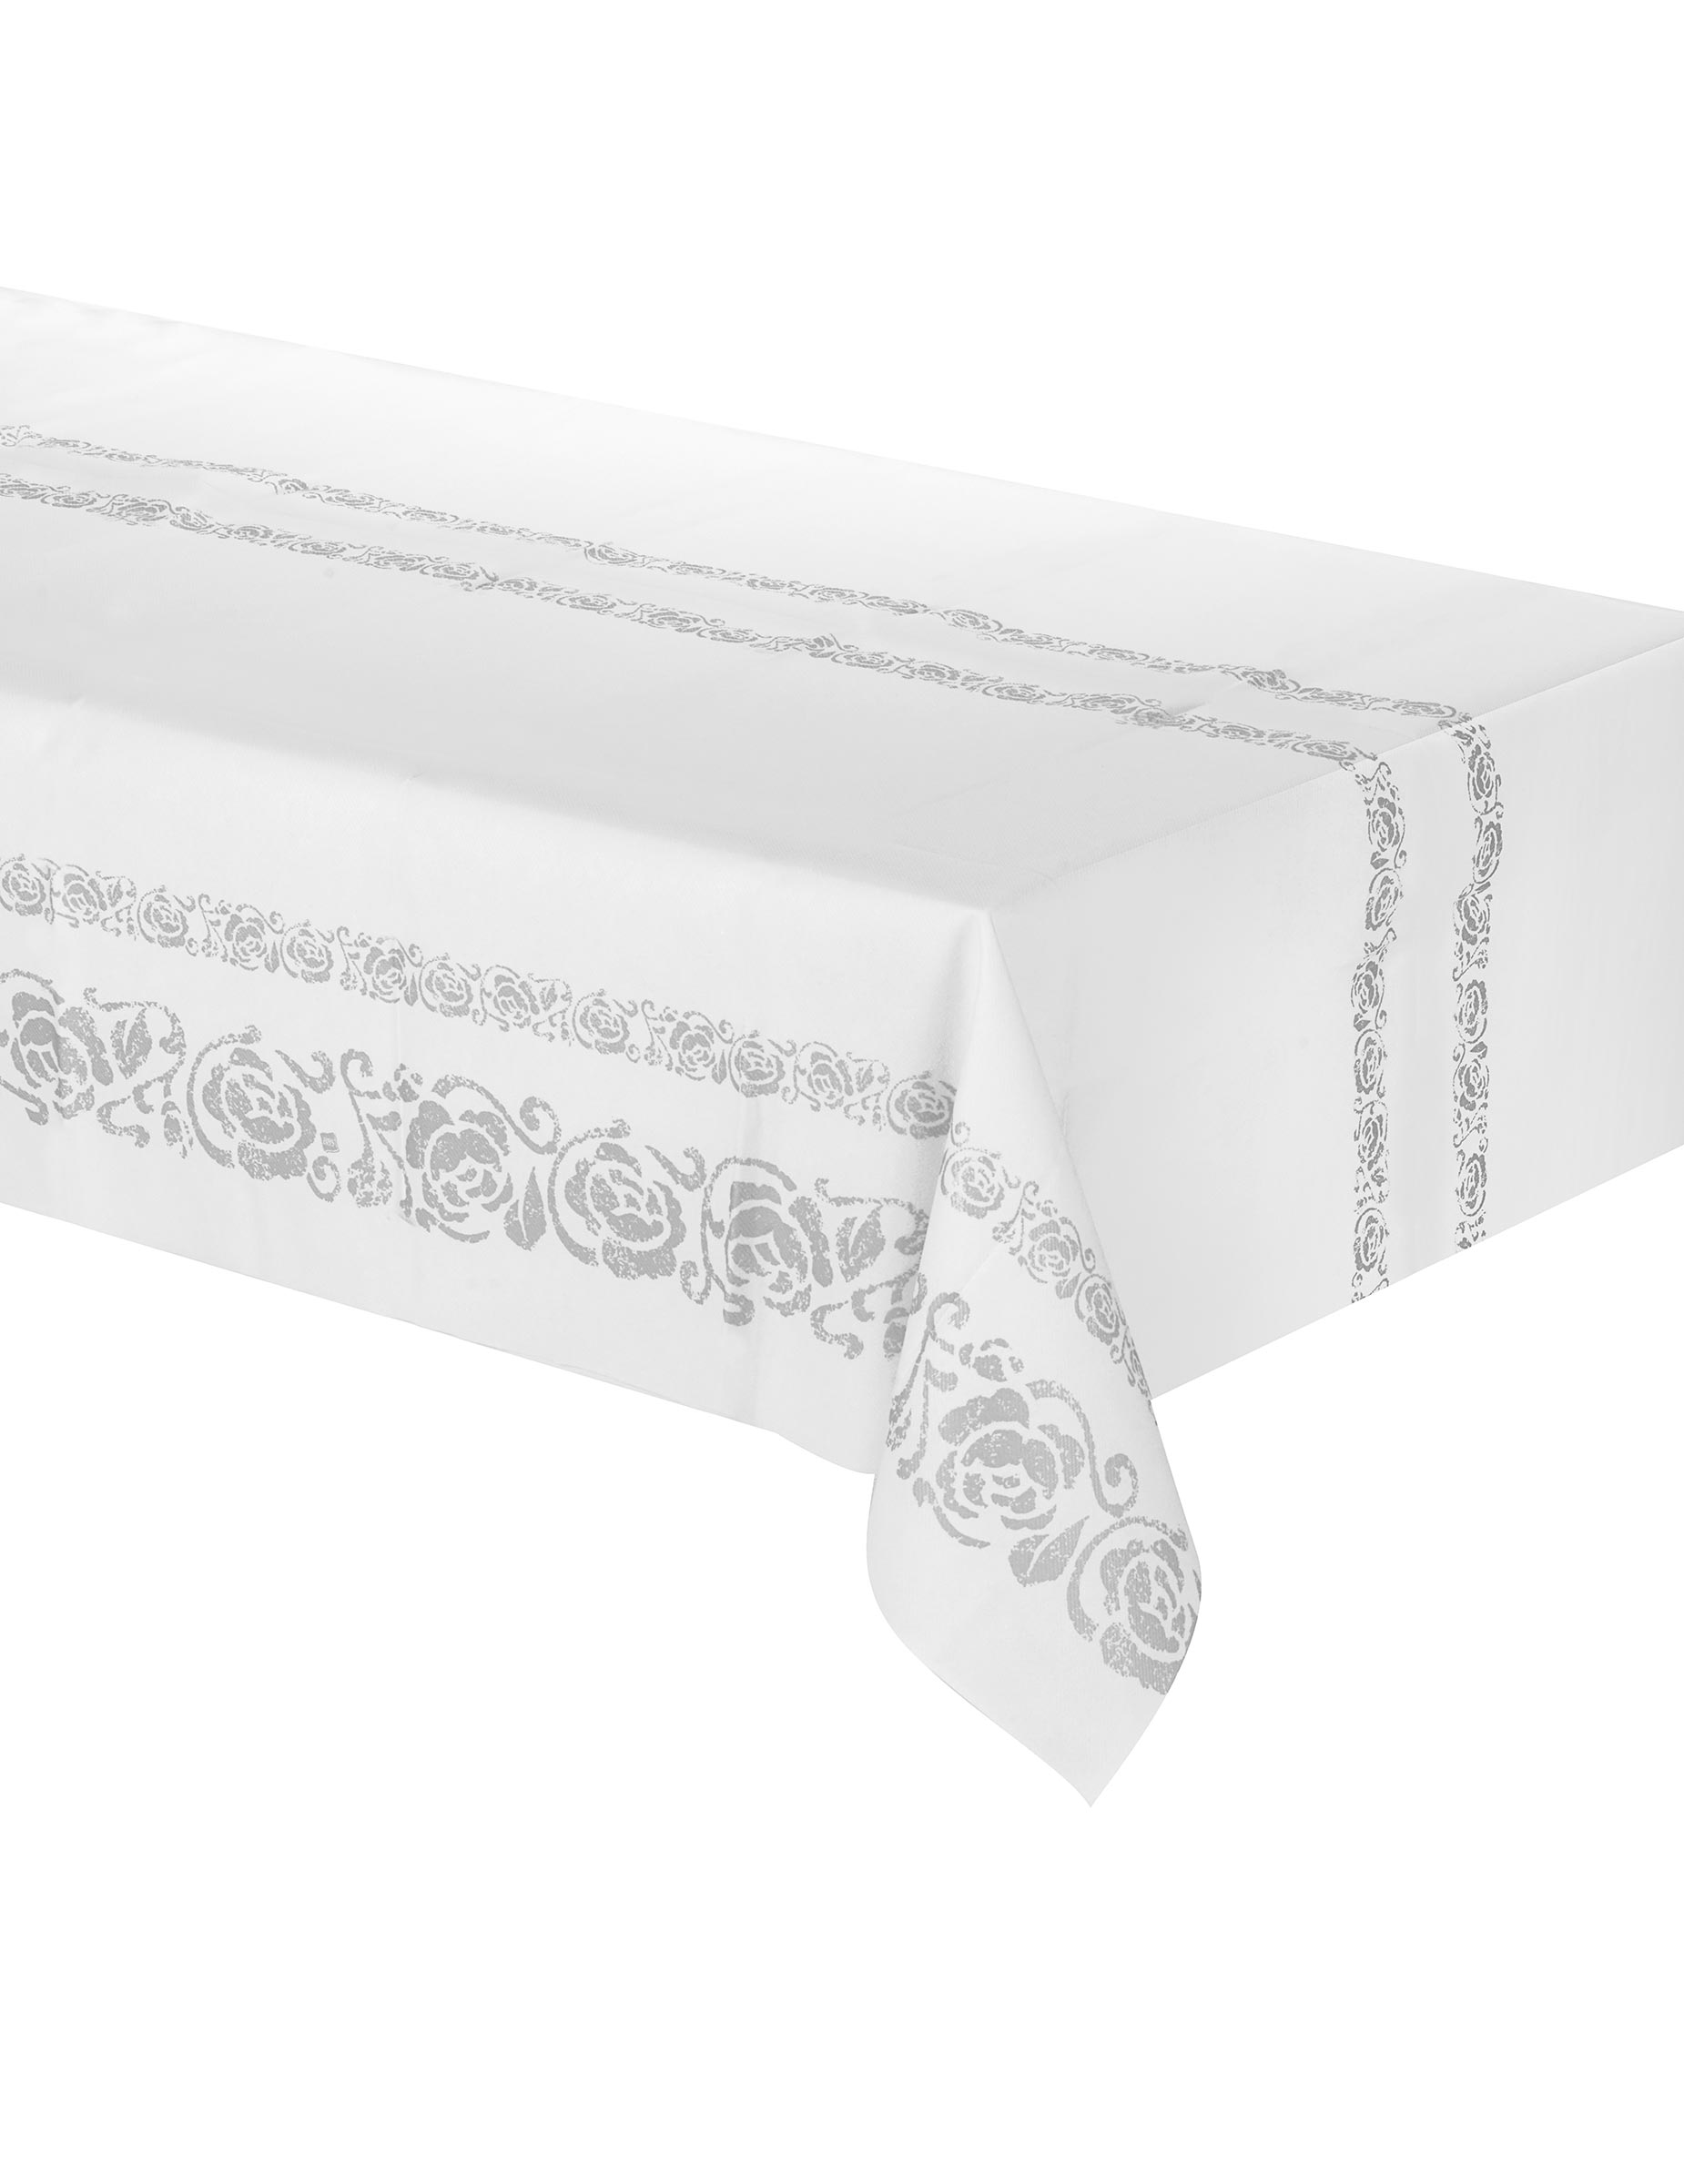 nappe arabesque argent e deguise toi achat de decoration animation. Black Bedroom Furniture Sets. Home Design Ideas